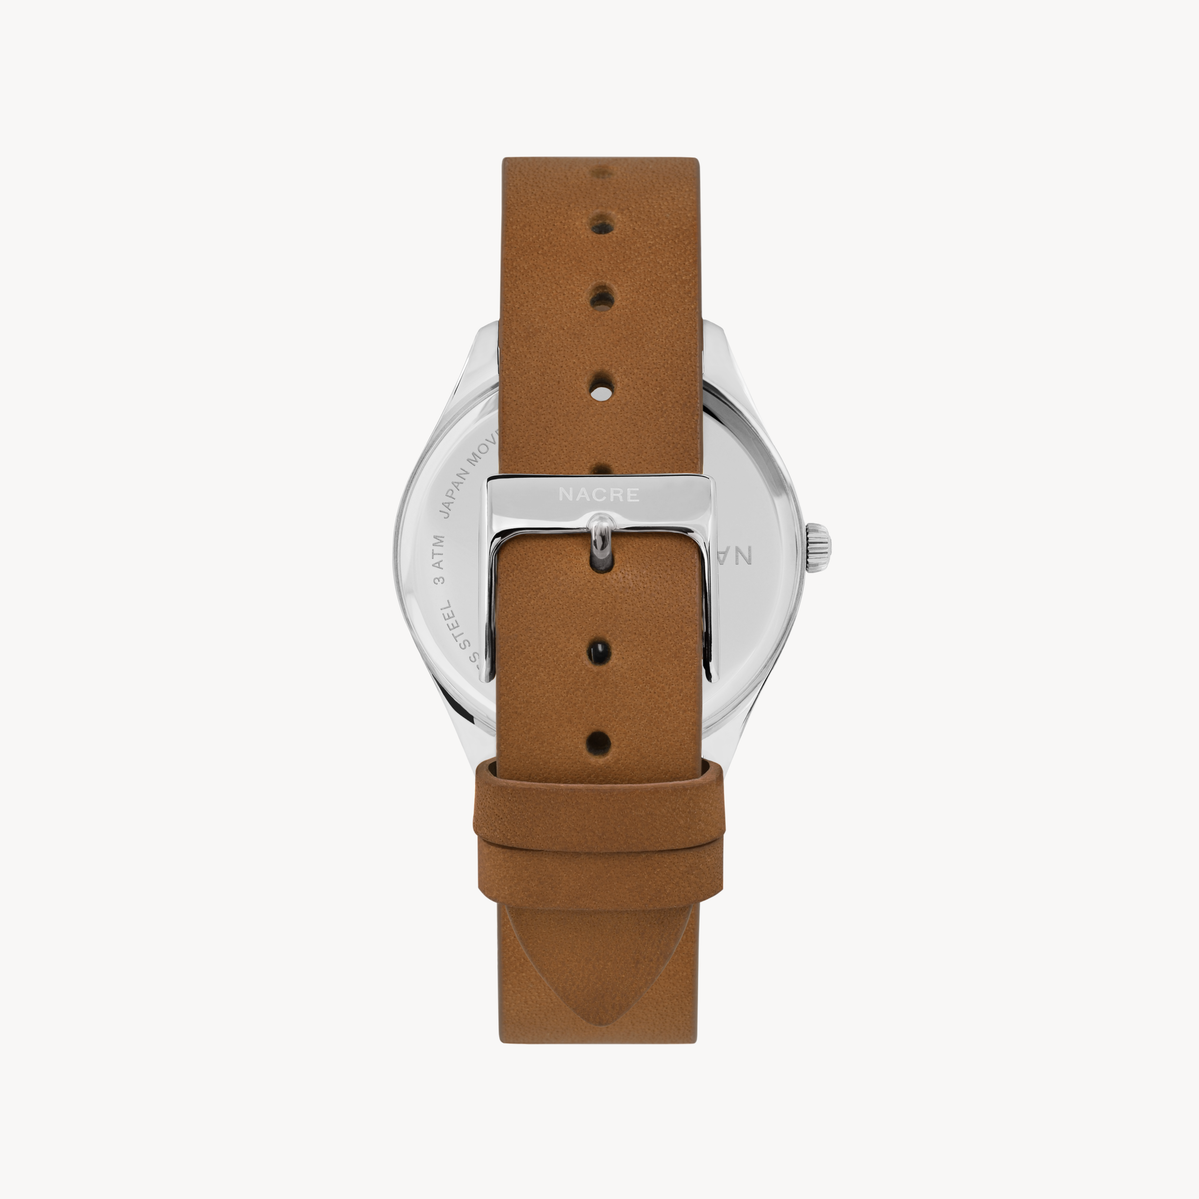 Lune - Stainless Steel - Saddle Leather